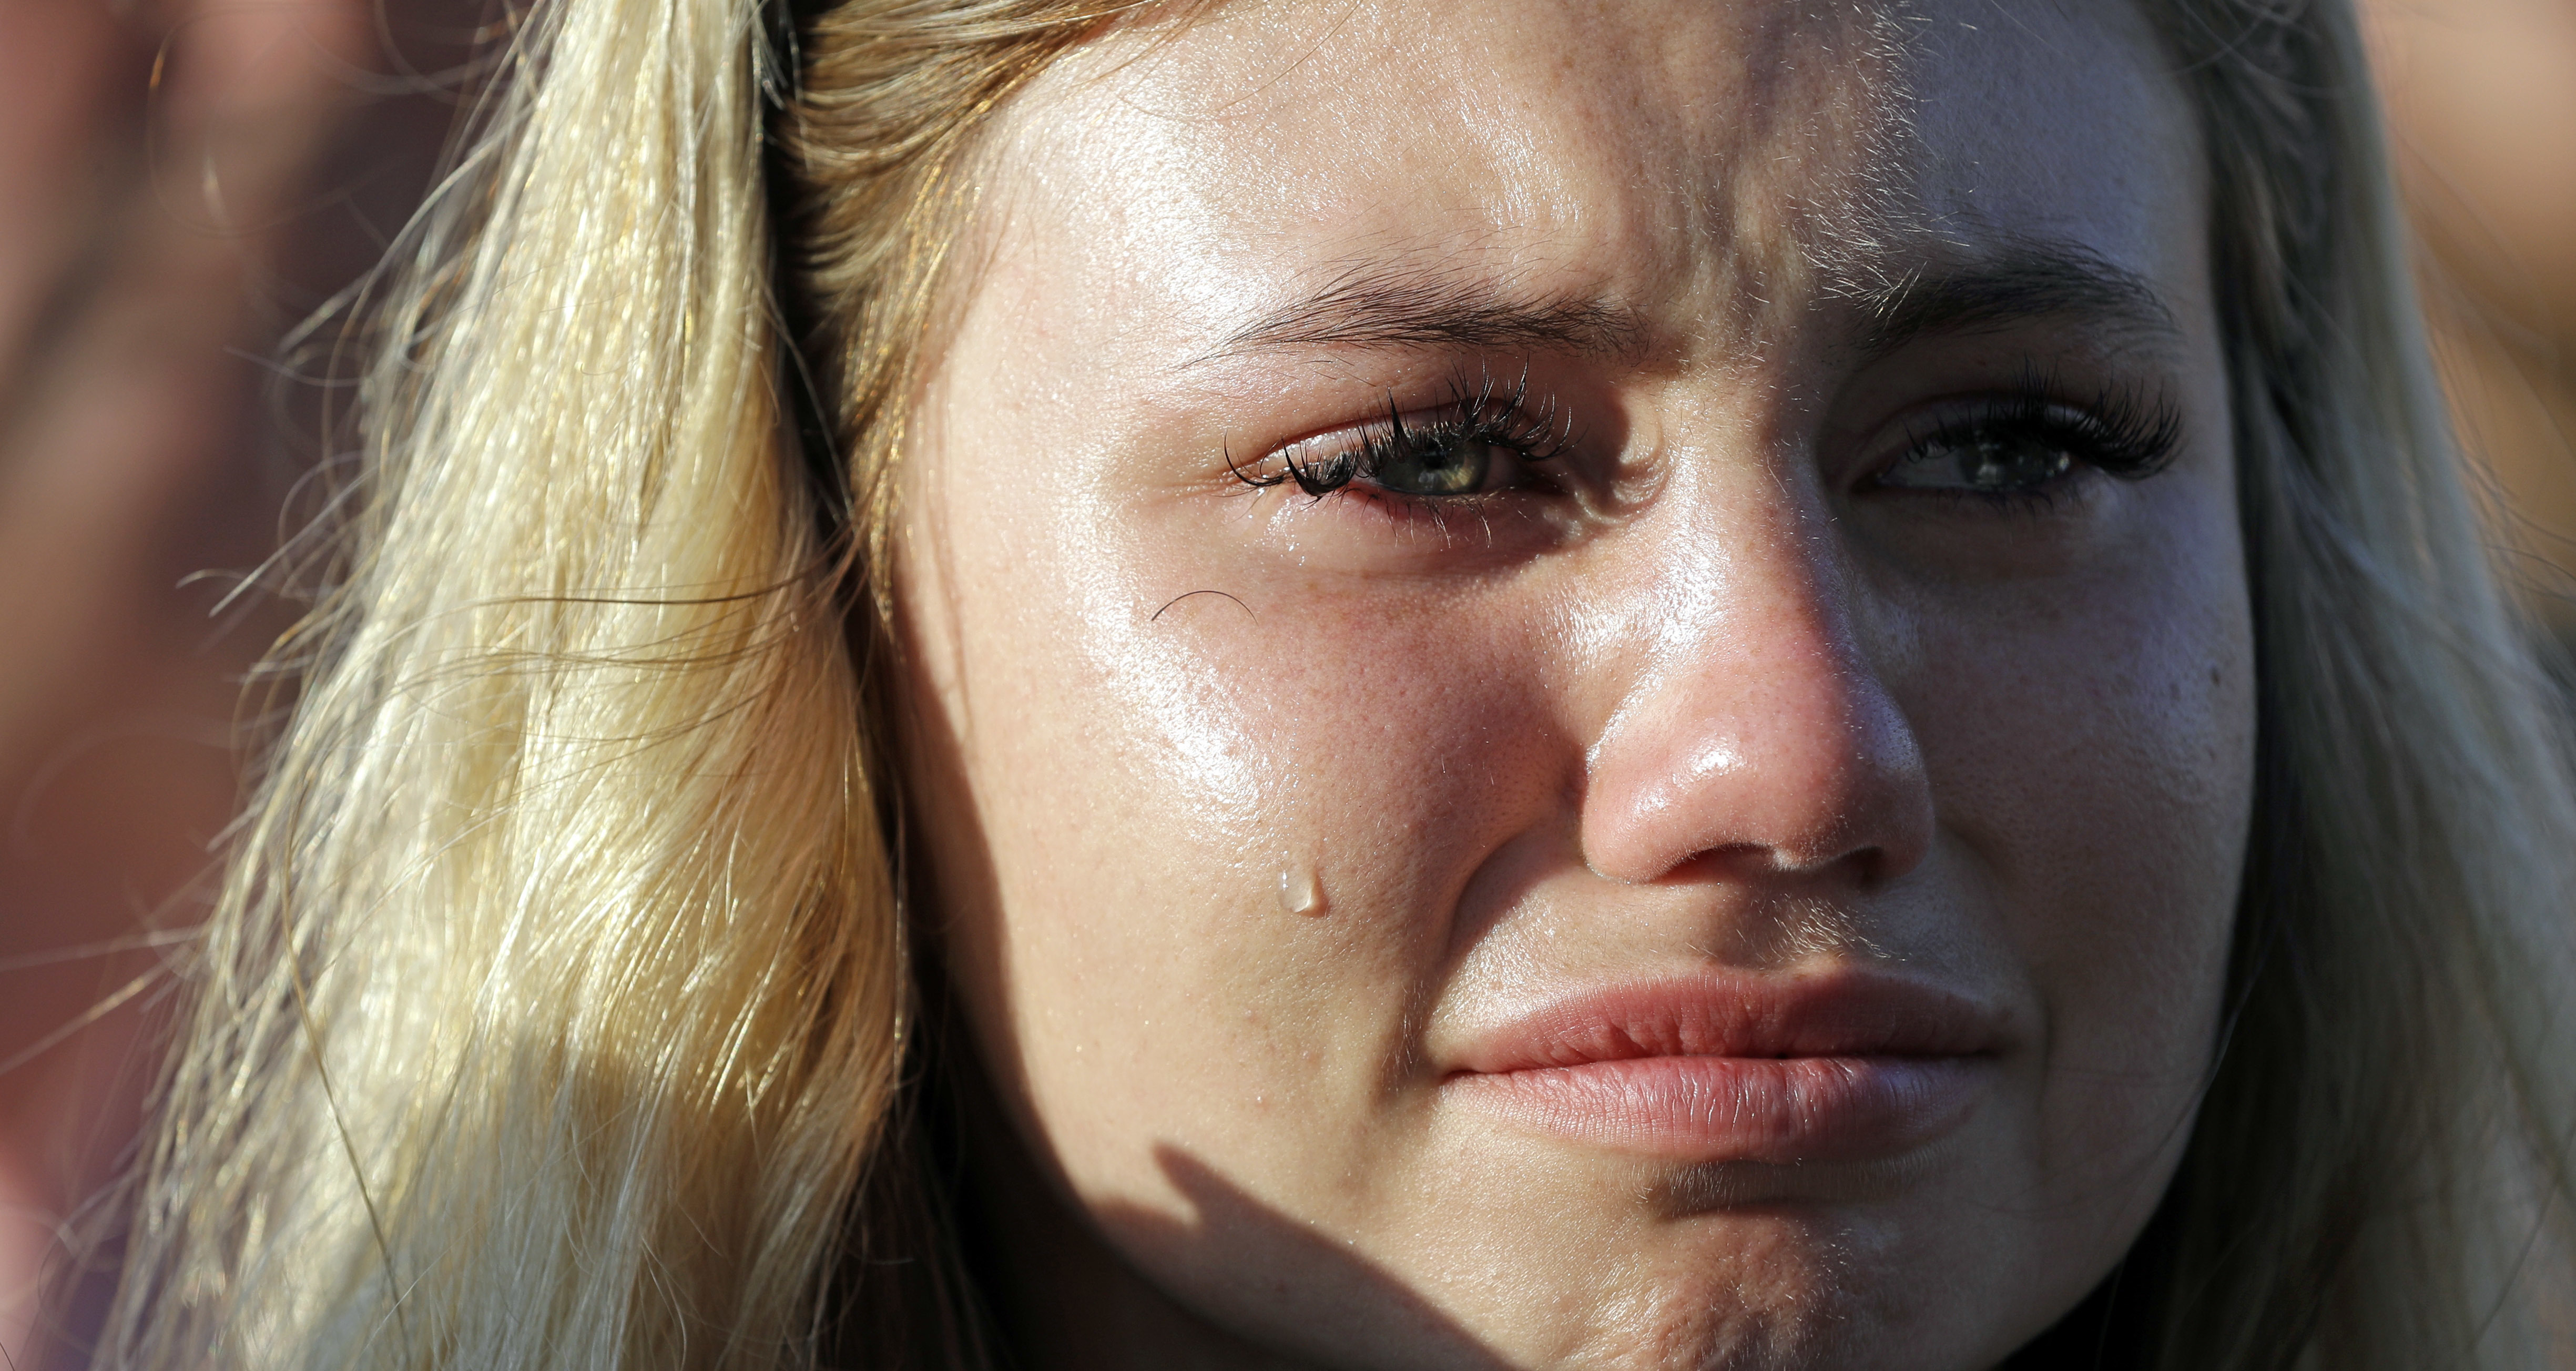 <div class='meta'><div class='origin-logo' data-origin='AP'></div><span class='caption-text' data-credit='AP'>A tear rolls down the face of Sante Fe High School junior Paige Keenan during a prayer vigil following a shooting at Santa Fe High School. (AP Photo/David J. Phillip)</span></div>